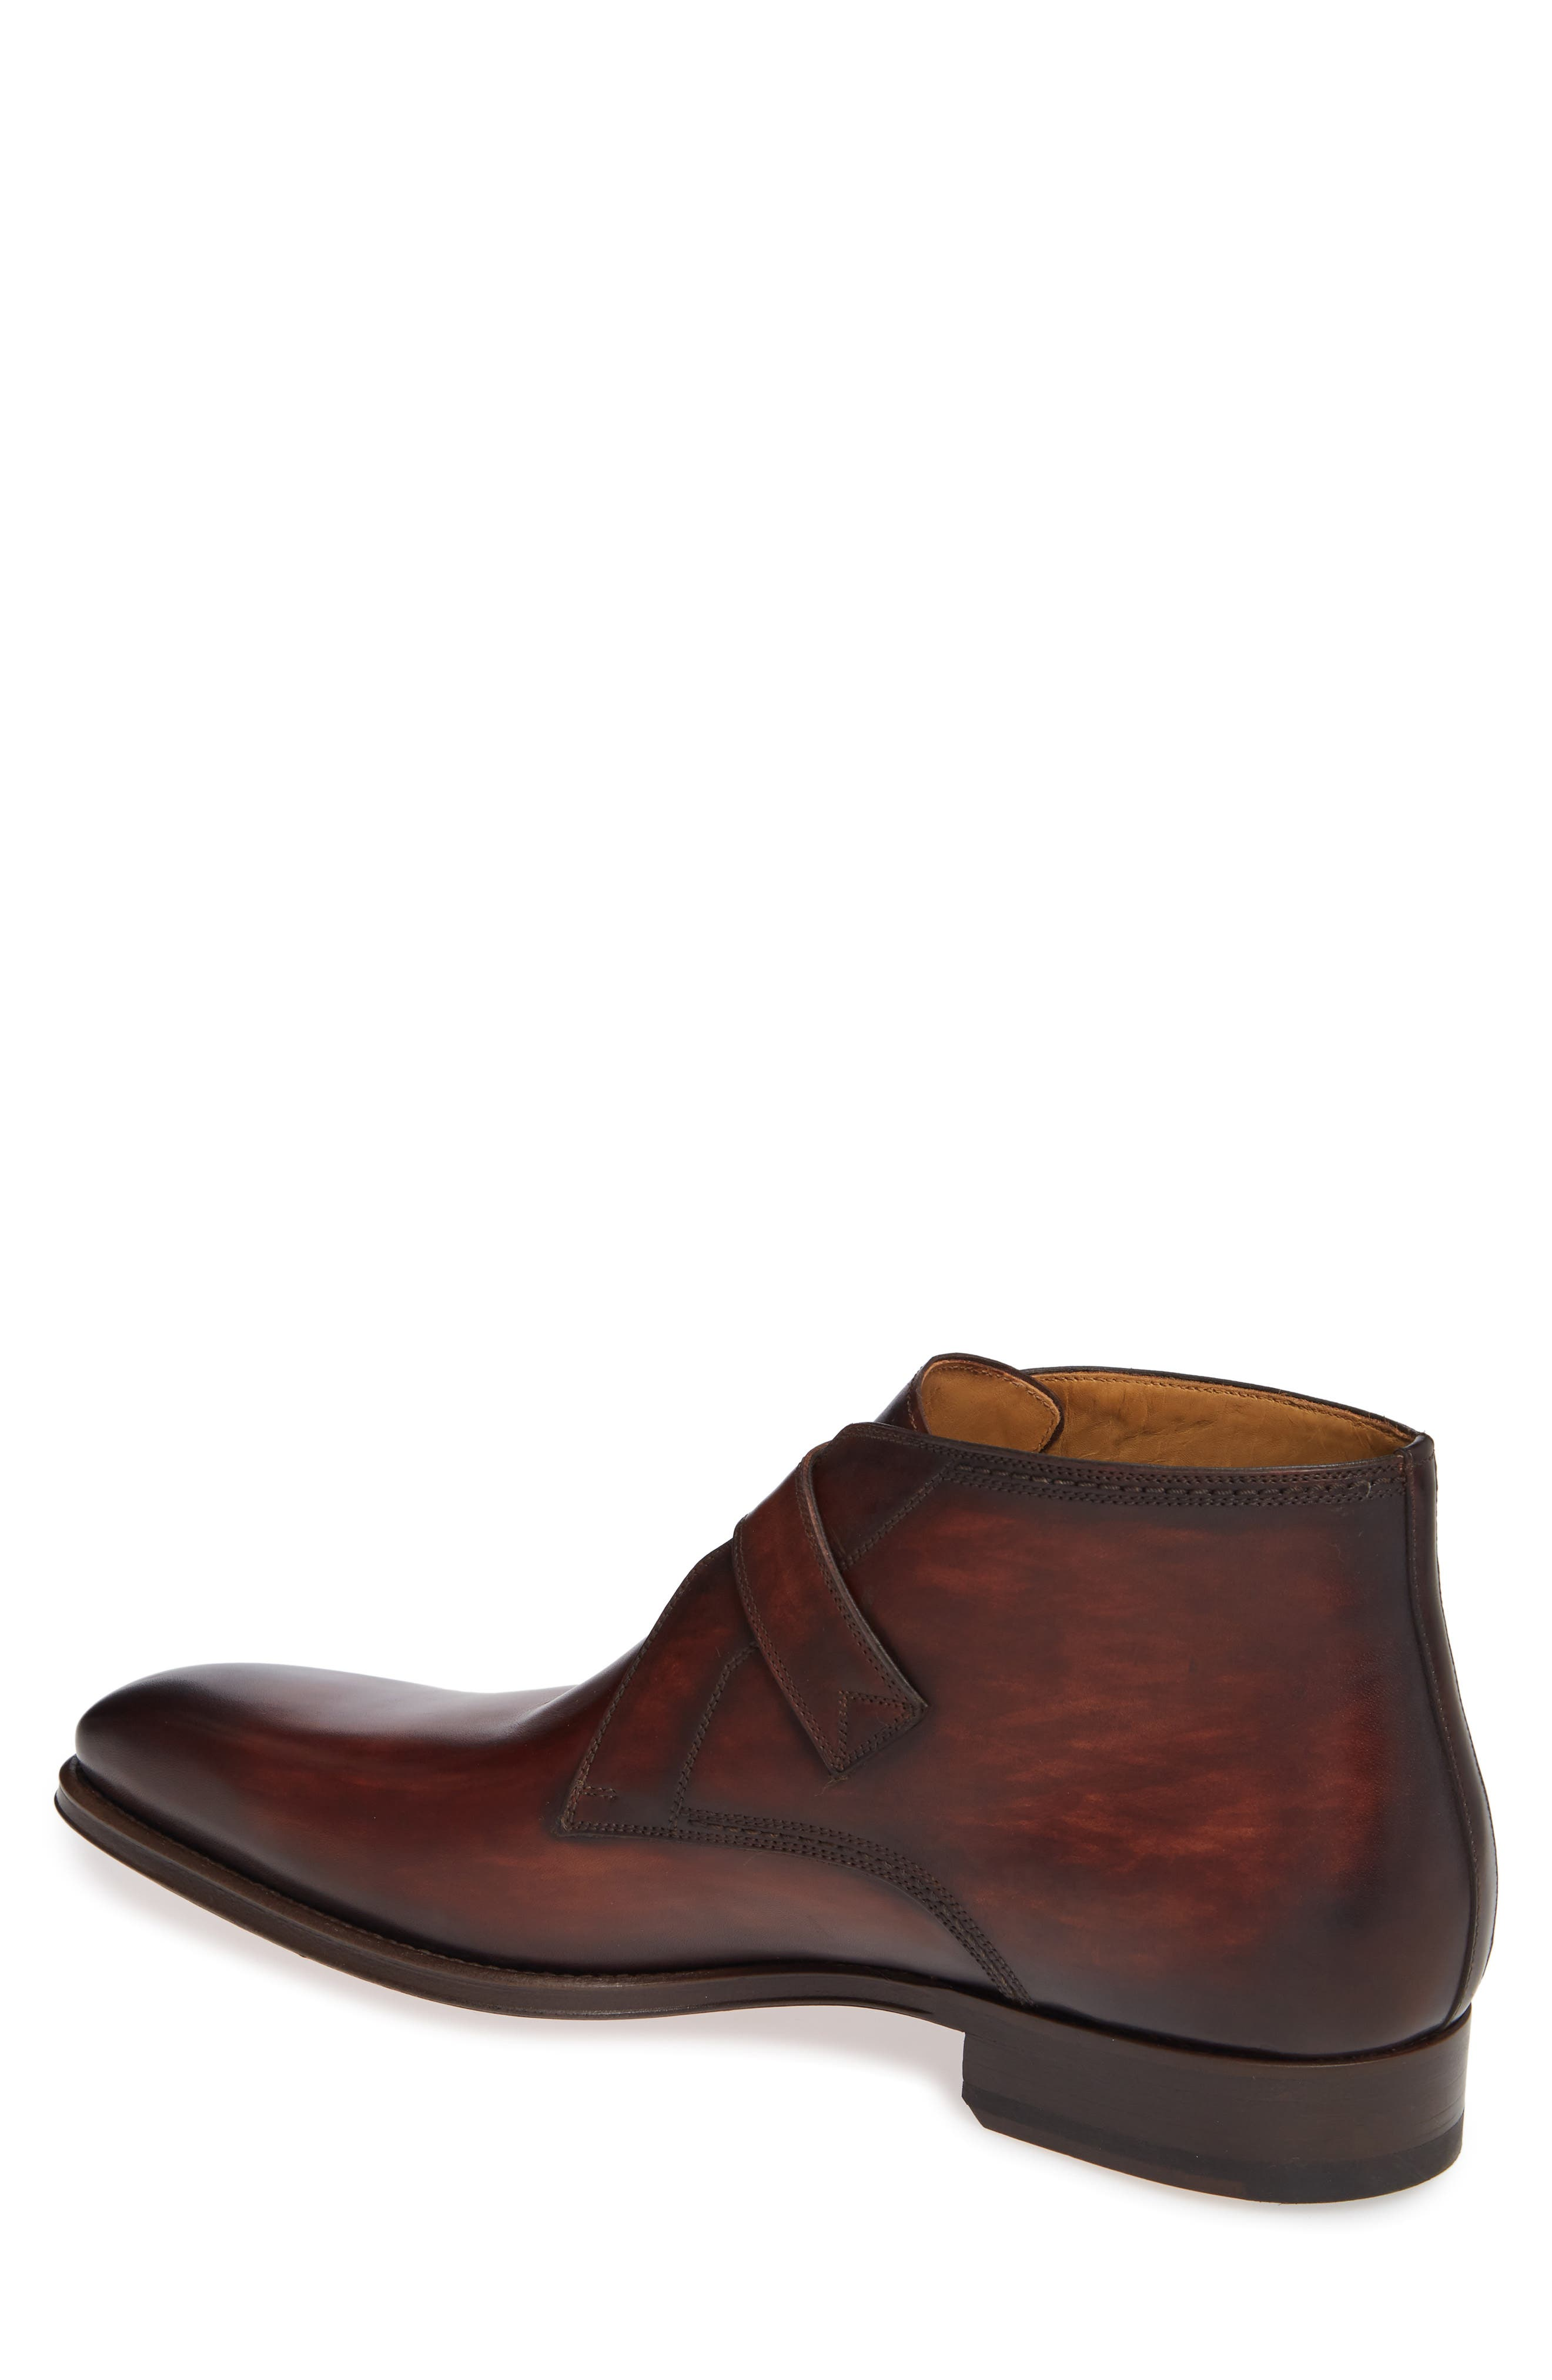 MAGNANNI,                             Luka Monk Strap Boot,                             Alternate thumbnail 2, color,                             MID BROWN LEATHER